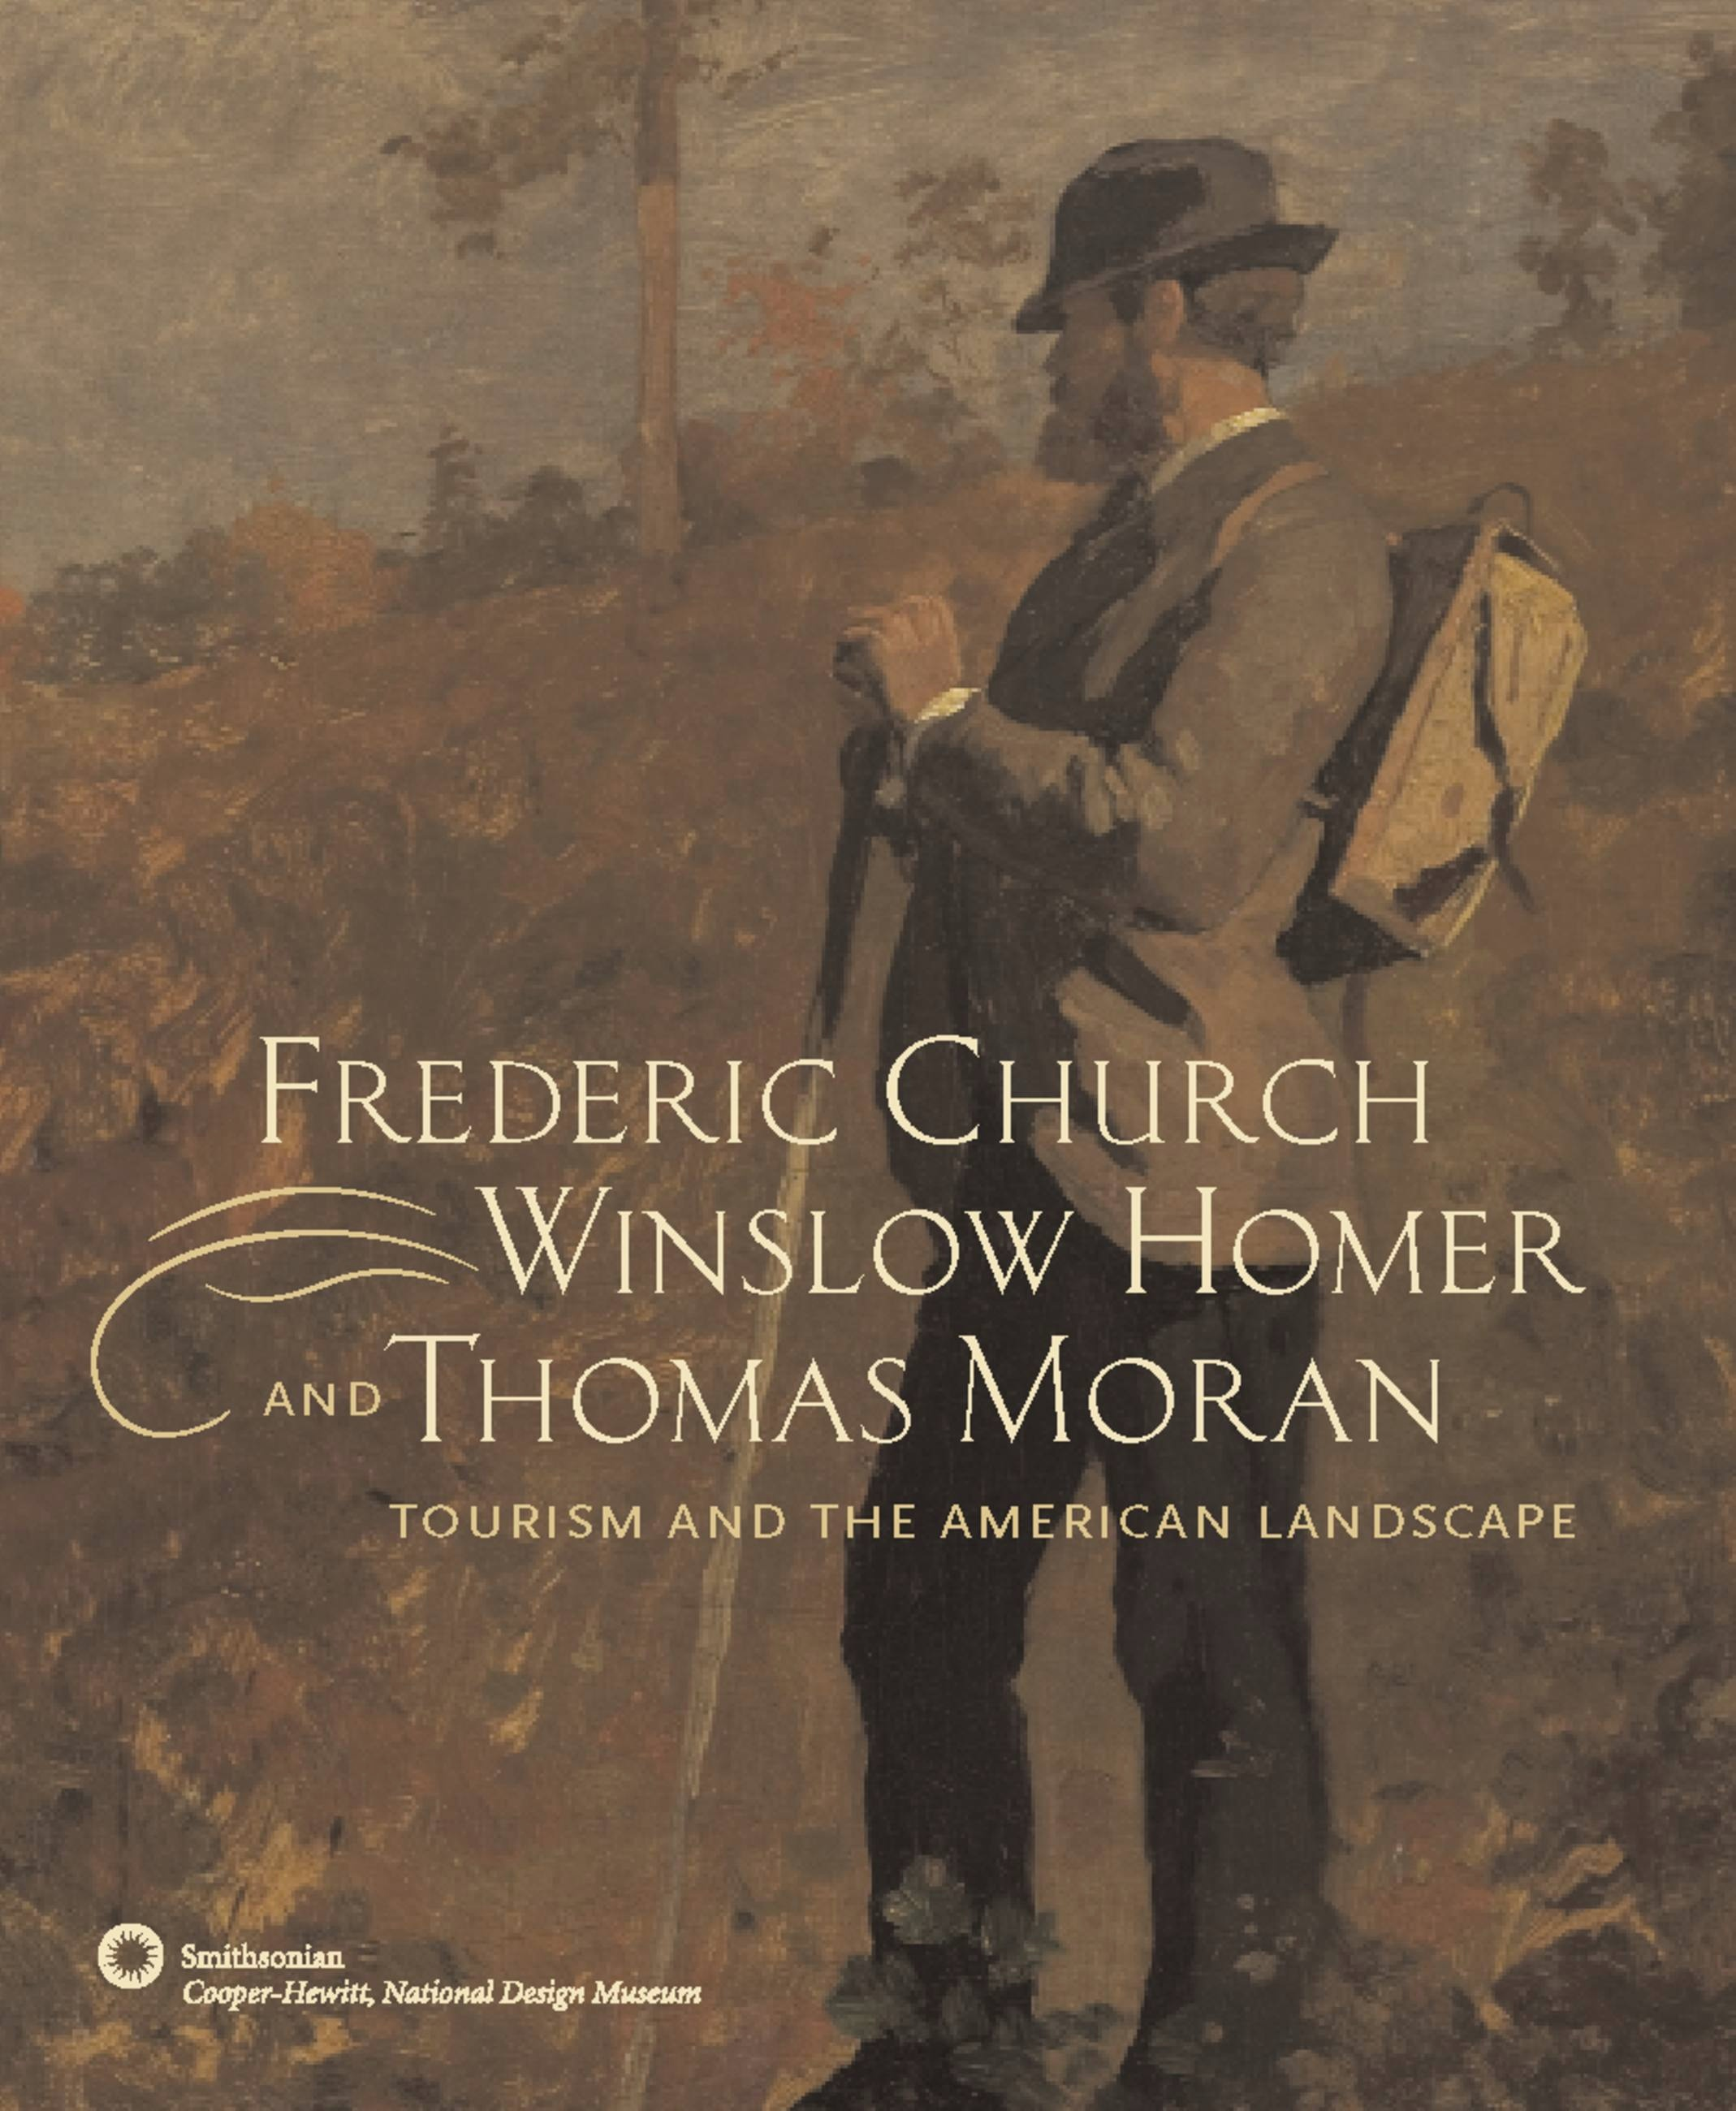 Frederic Church, Winslow Homer, and Thomas Moran